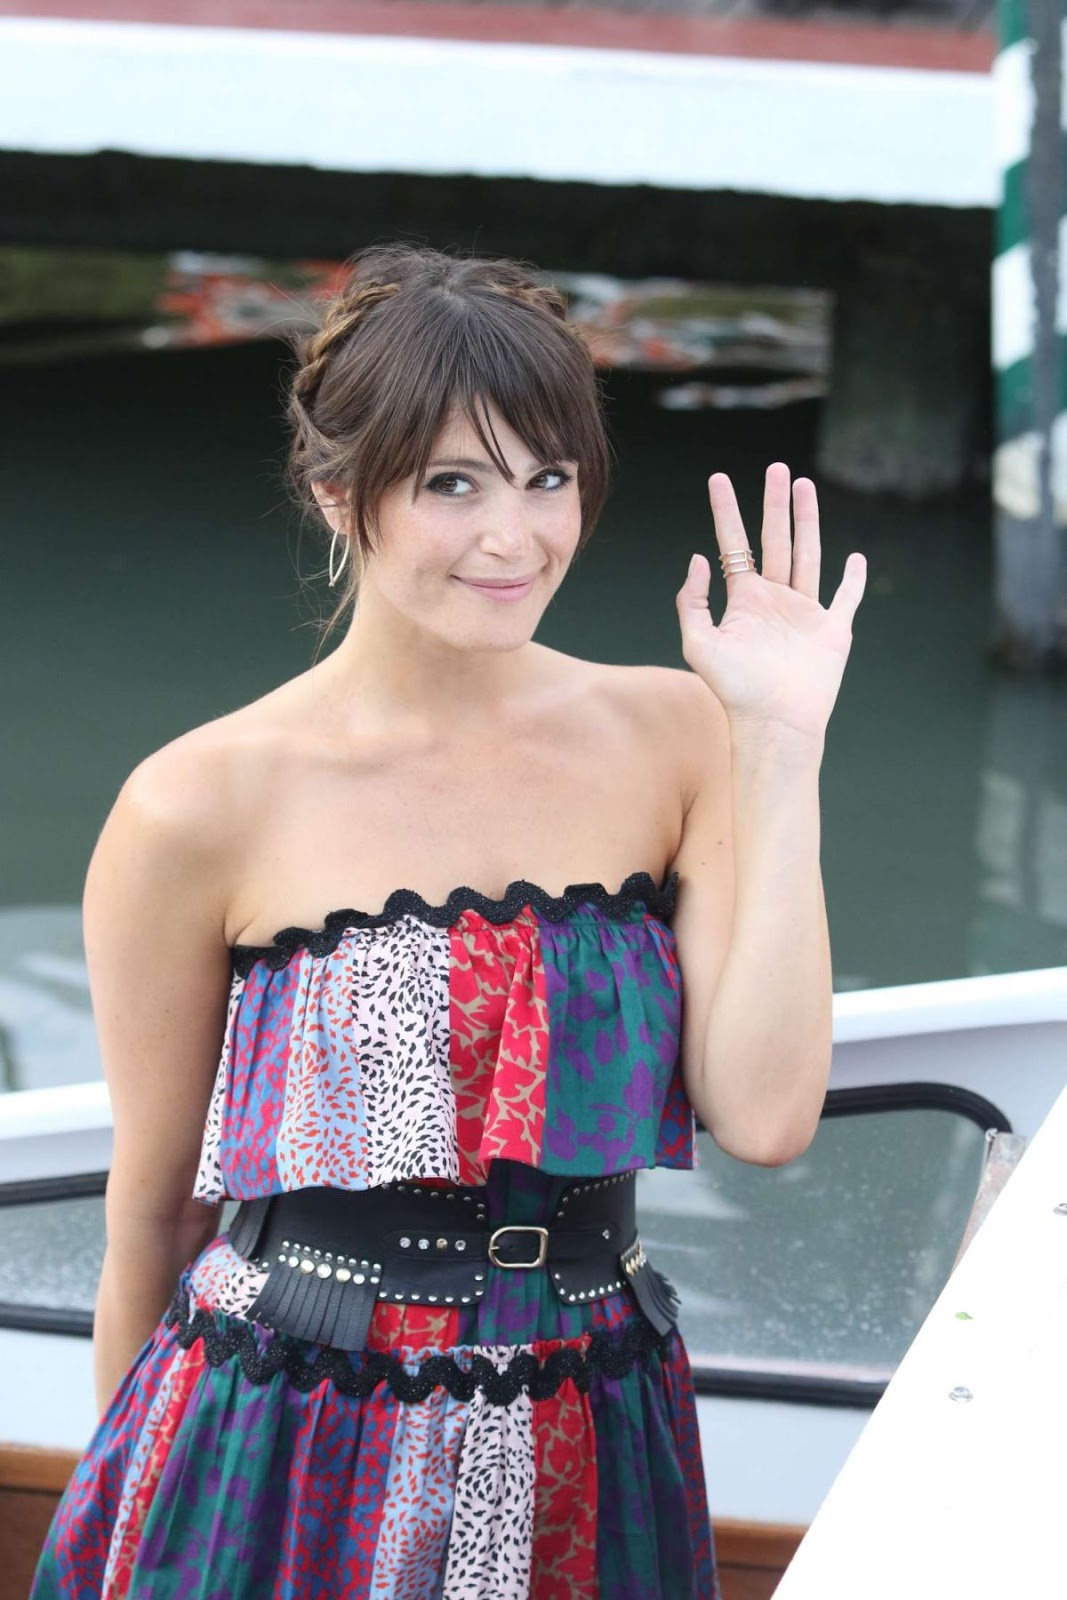 HQ Photos of Gemma Arterton at A Water Taxi for 2016 73rd Venice Film Festival in Venice